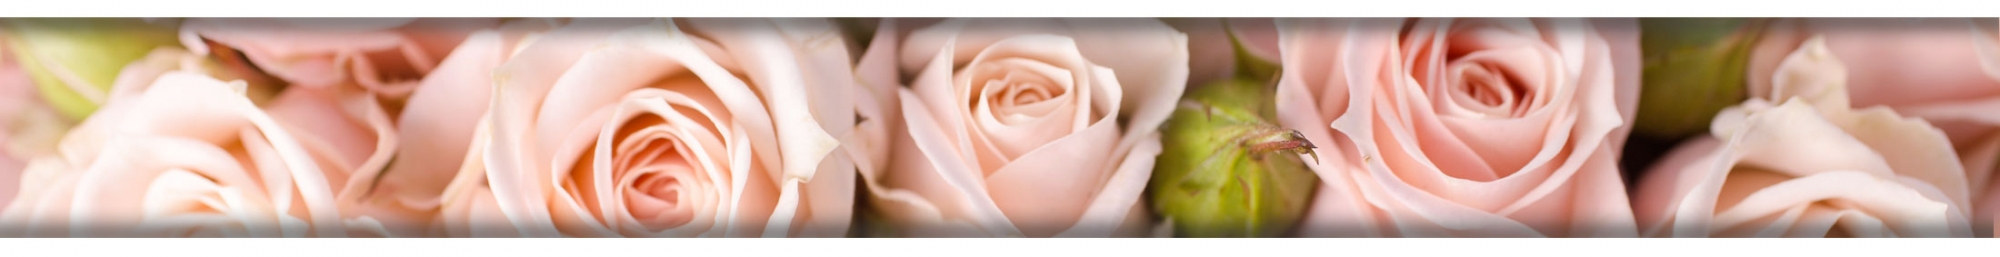 gallery/immagine-rose-rosa